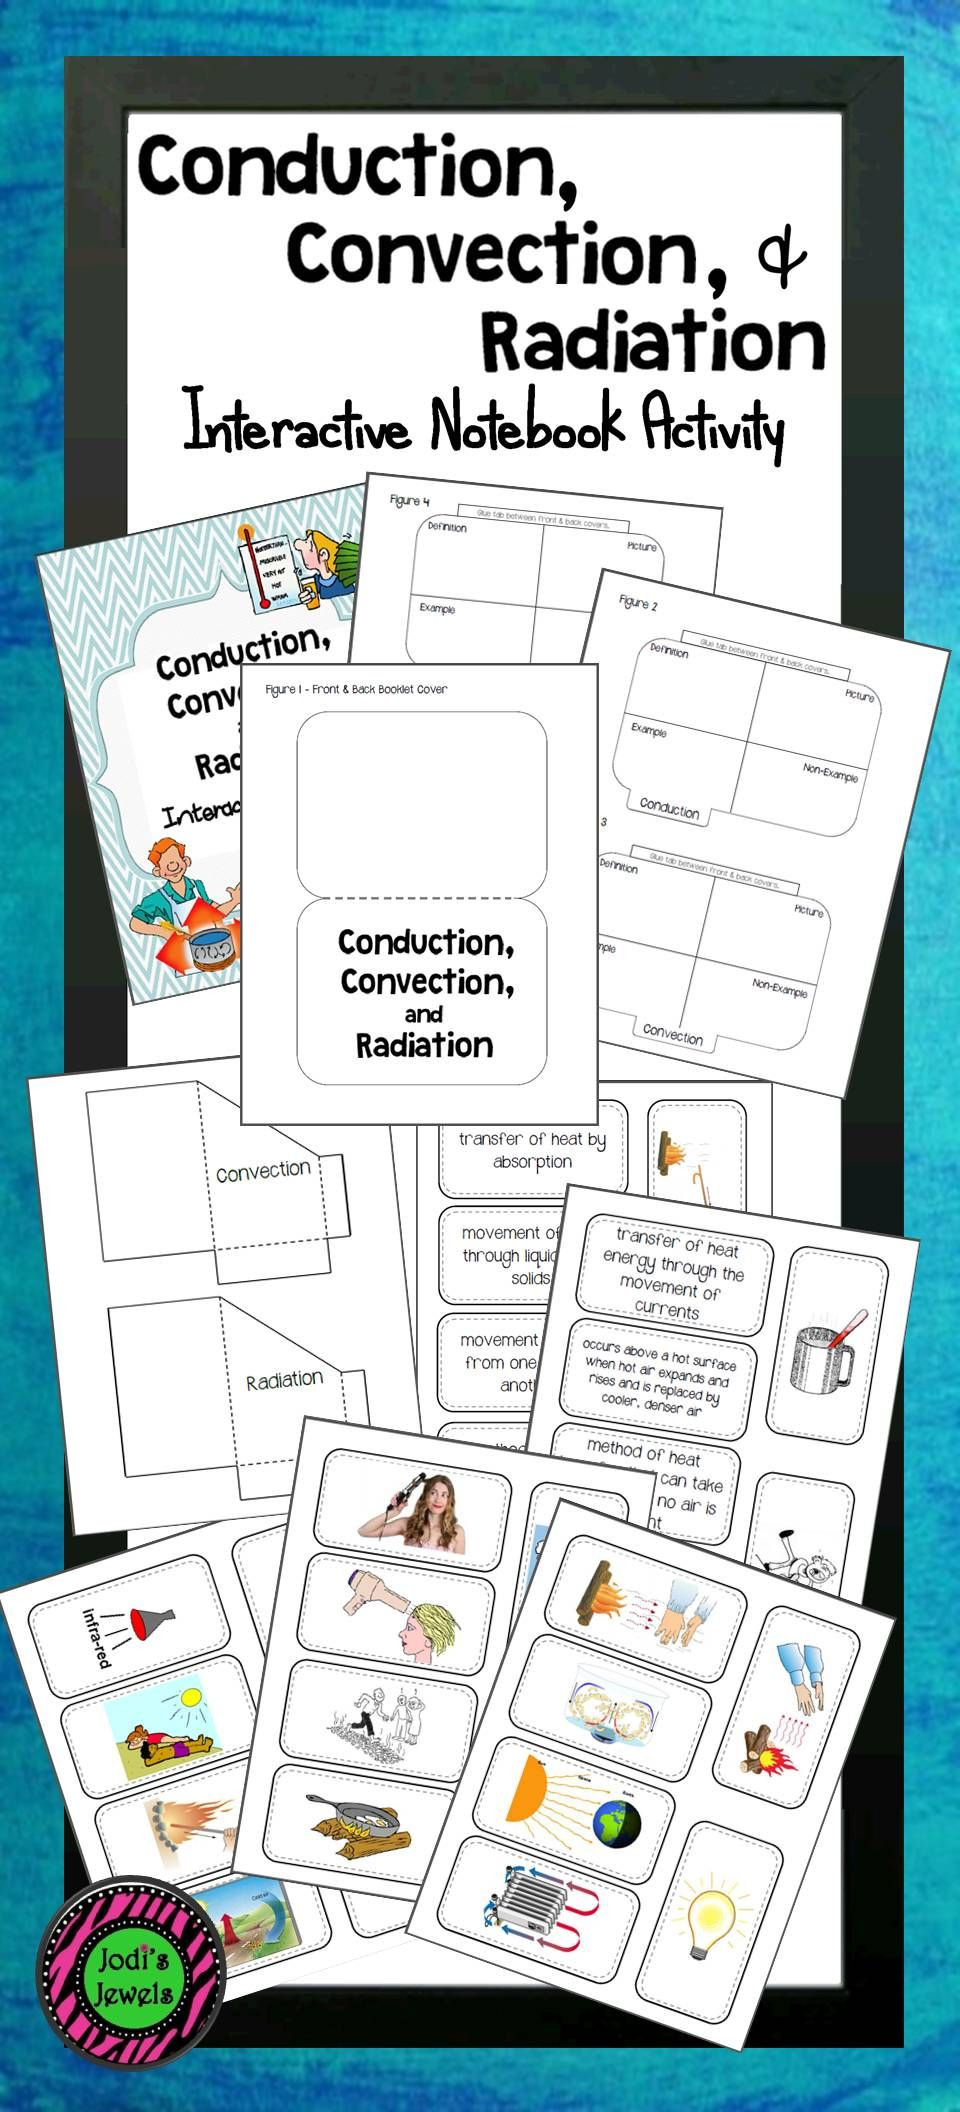 Heat Transfer Worksheet Middle School Conduction Convection & Radiation Interactive Notebook